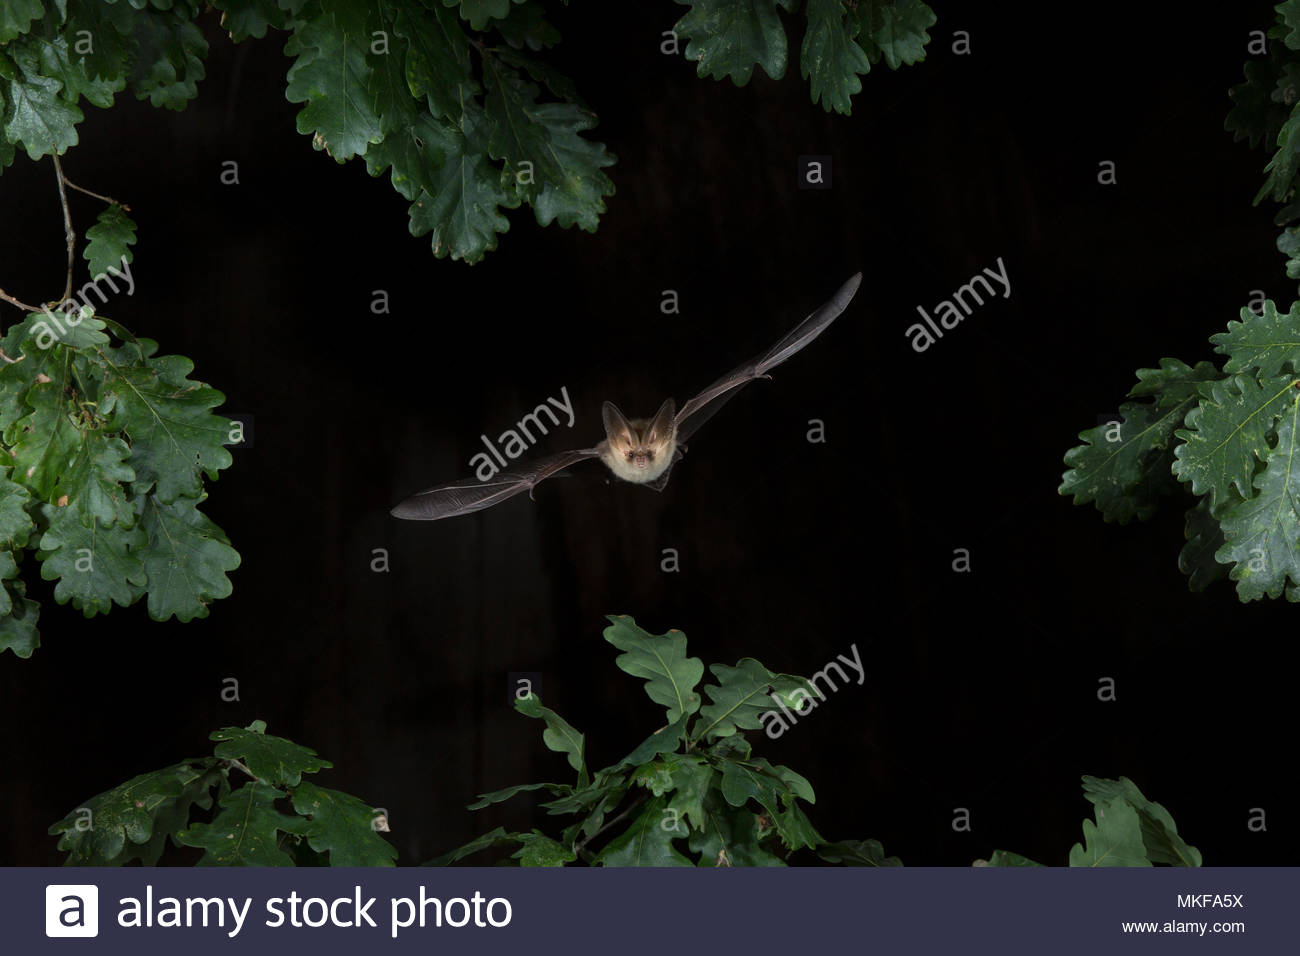 Brown long eared bat (Plecotus auritus) flying through the leaf canopy - Stock Image